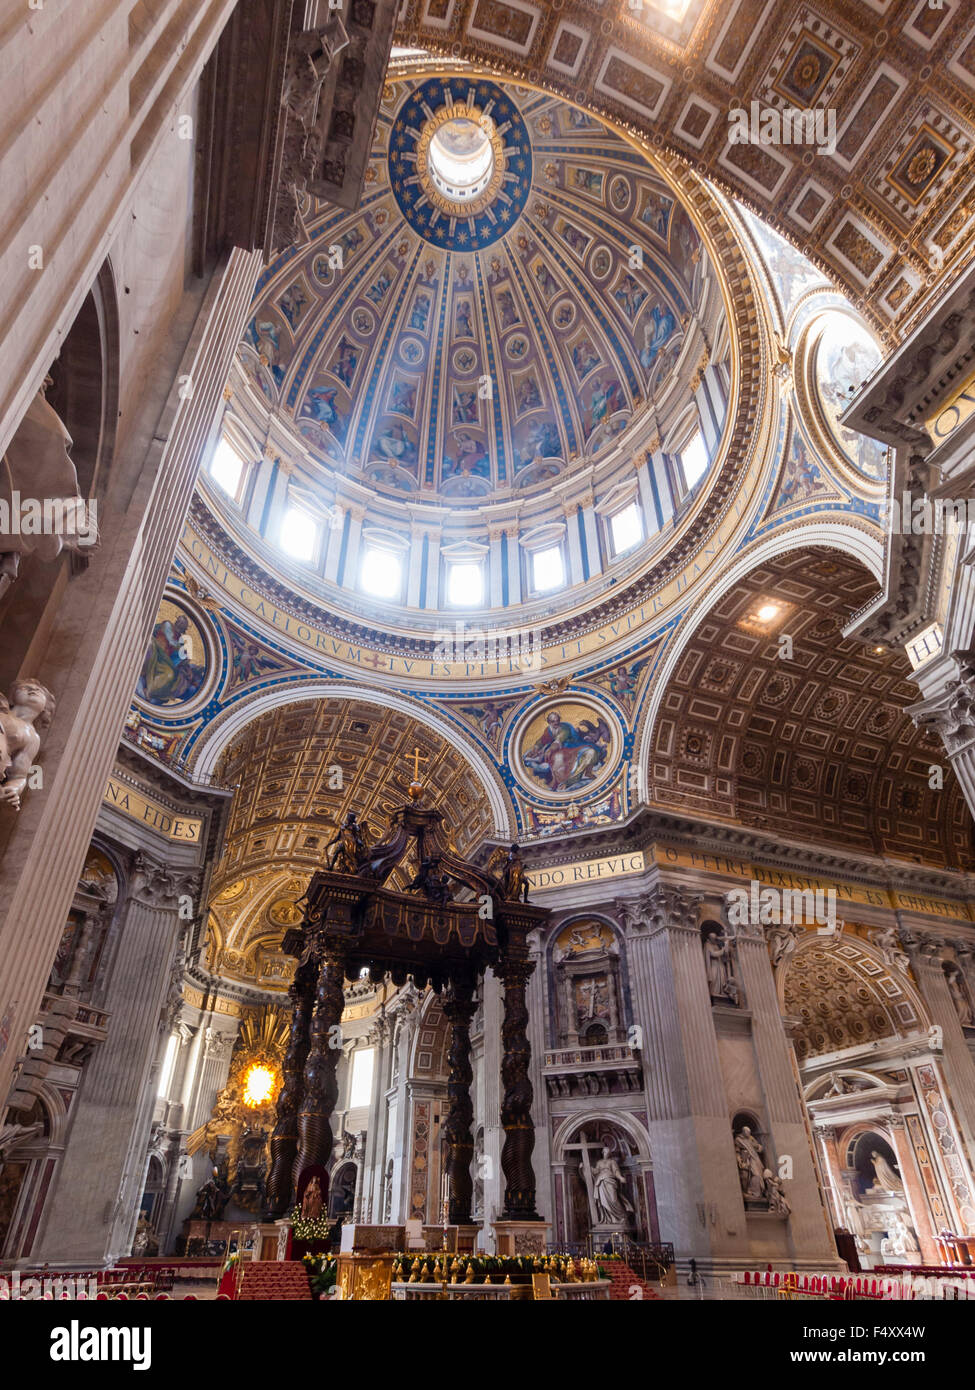 Interior of the Papal Basilica of St. Peter, Vatican: chancel with Bernini's baldacchino altar underneath the - Stock Image